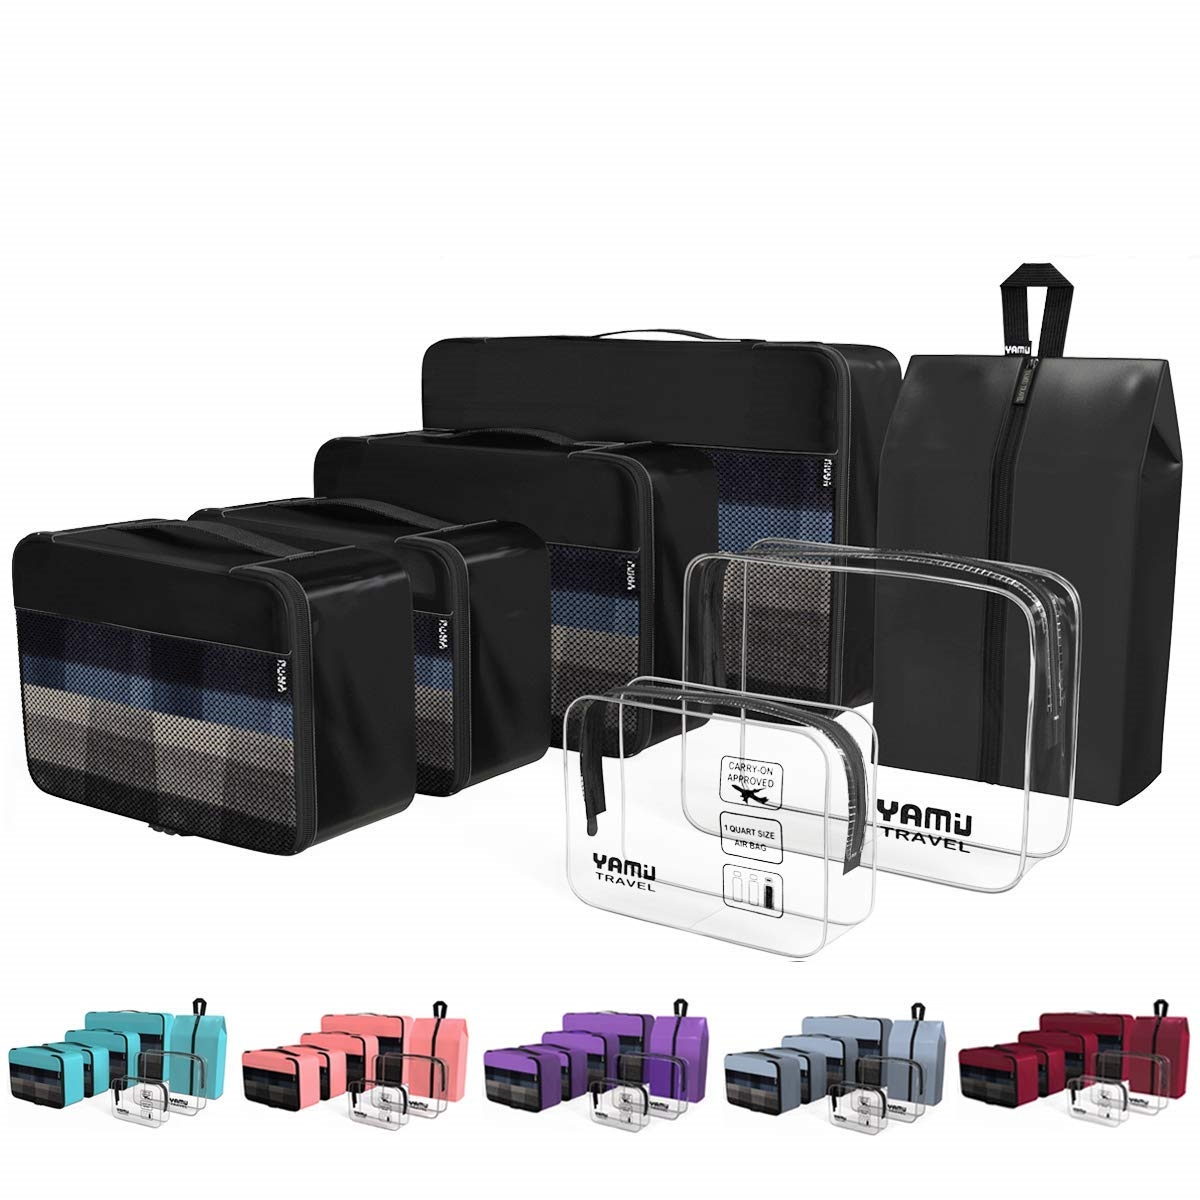 46d80f5ae8a3 YAMIU Packing Cubes 7-Pcs Travel Organizer Accessories with Shoe Bag & 2  Toiletry Bags(Black)